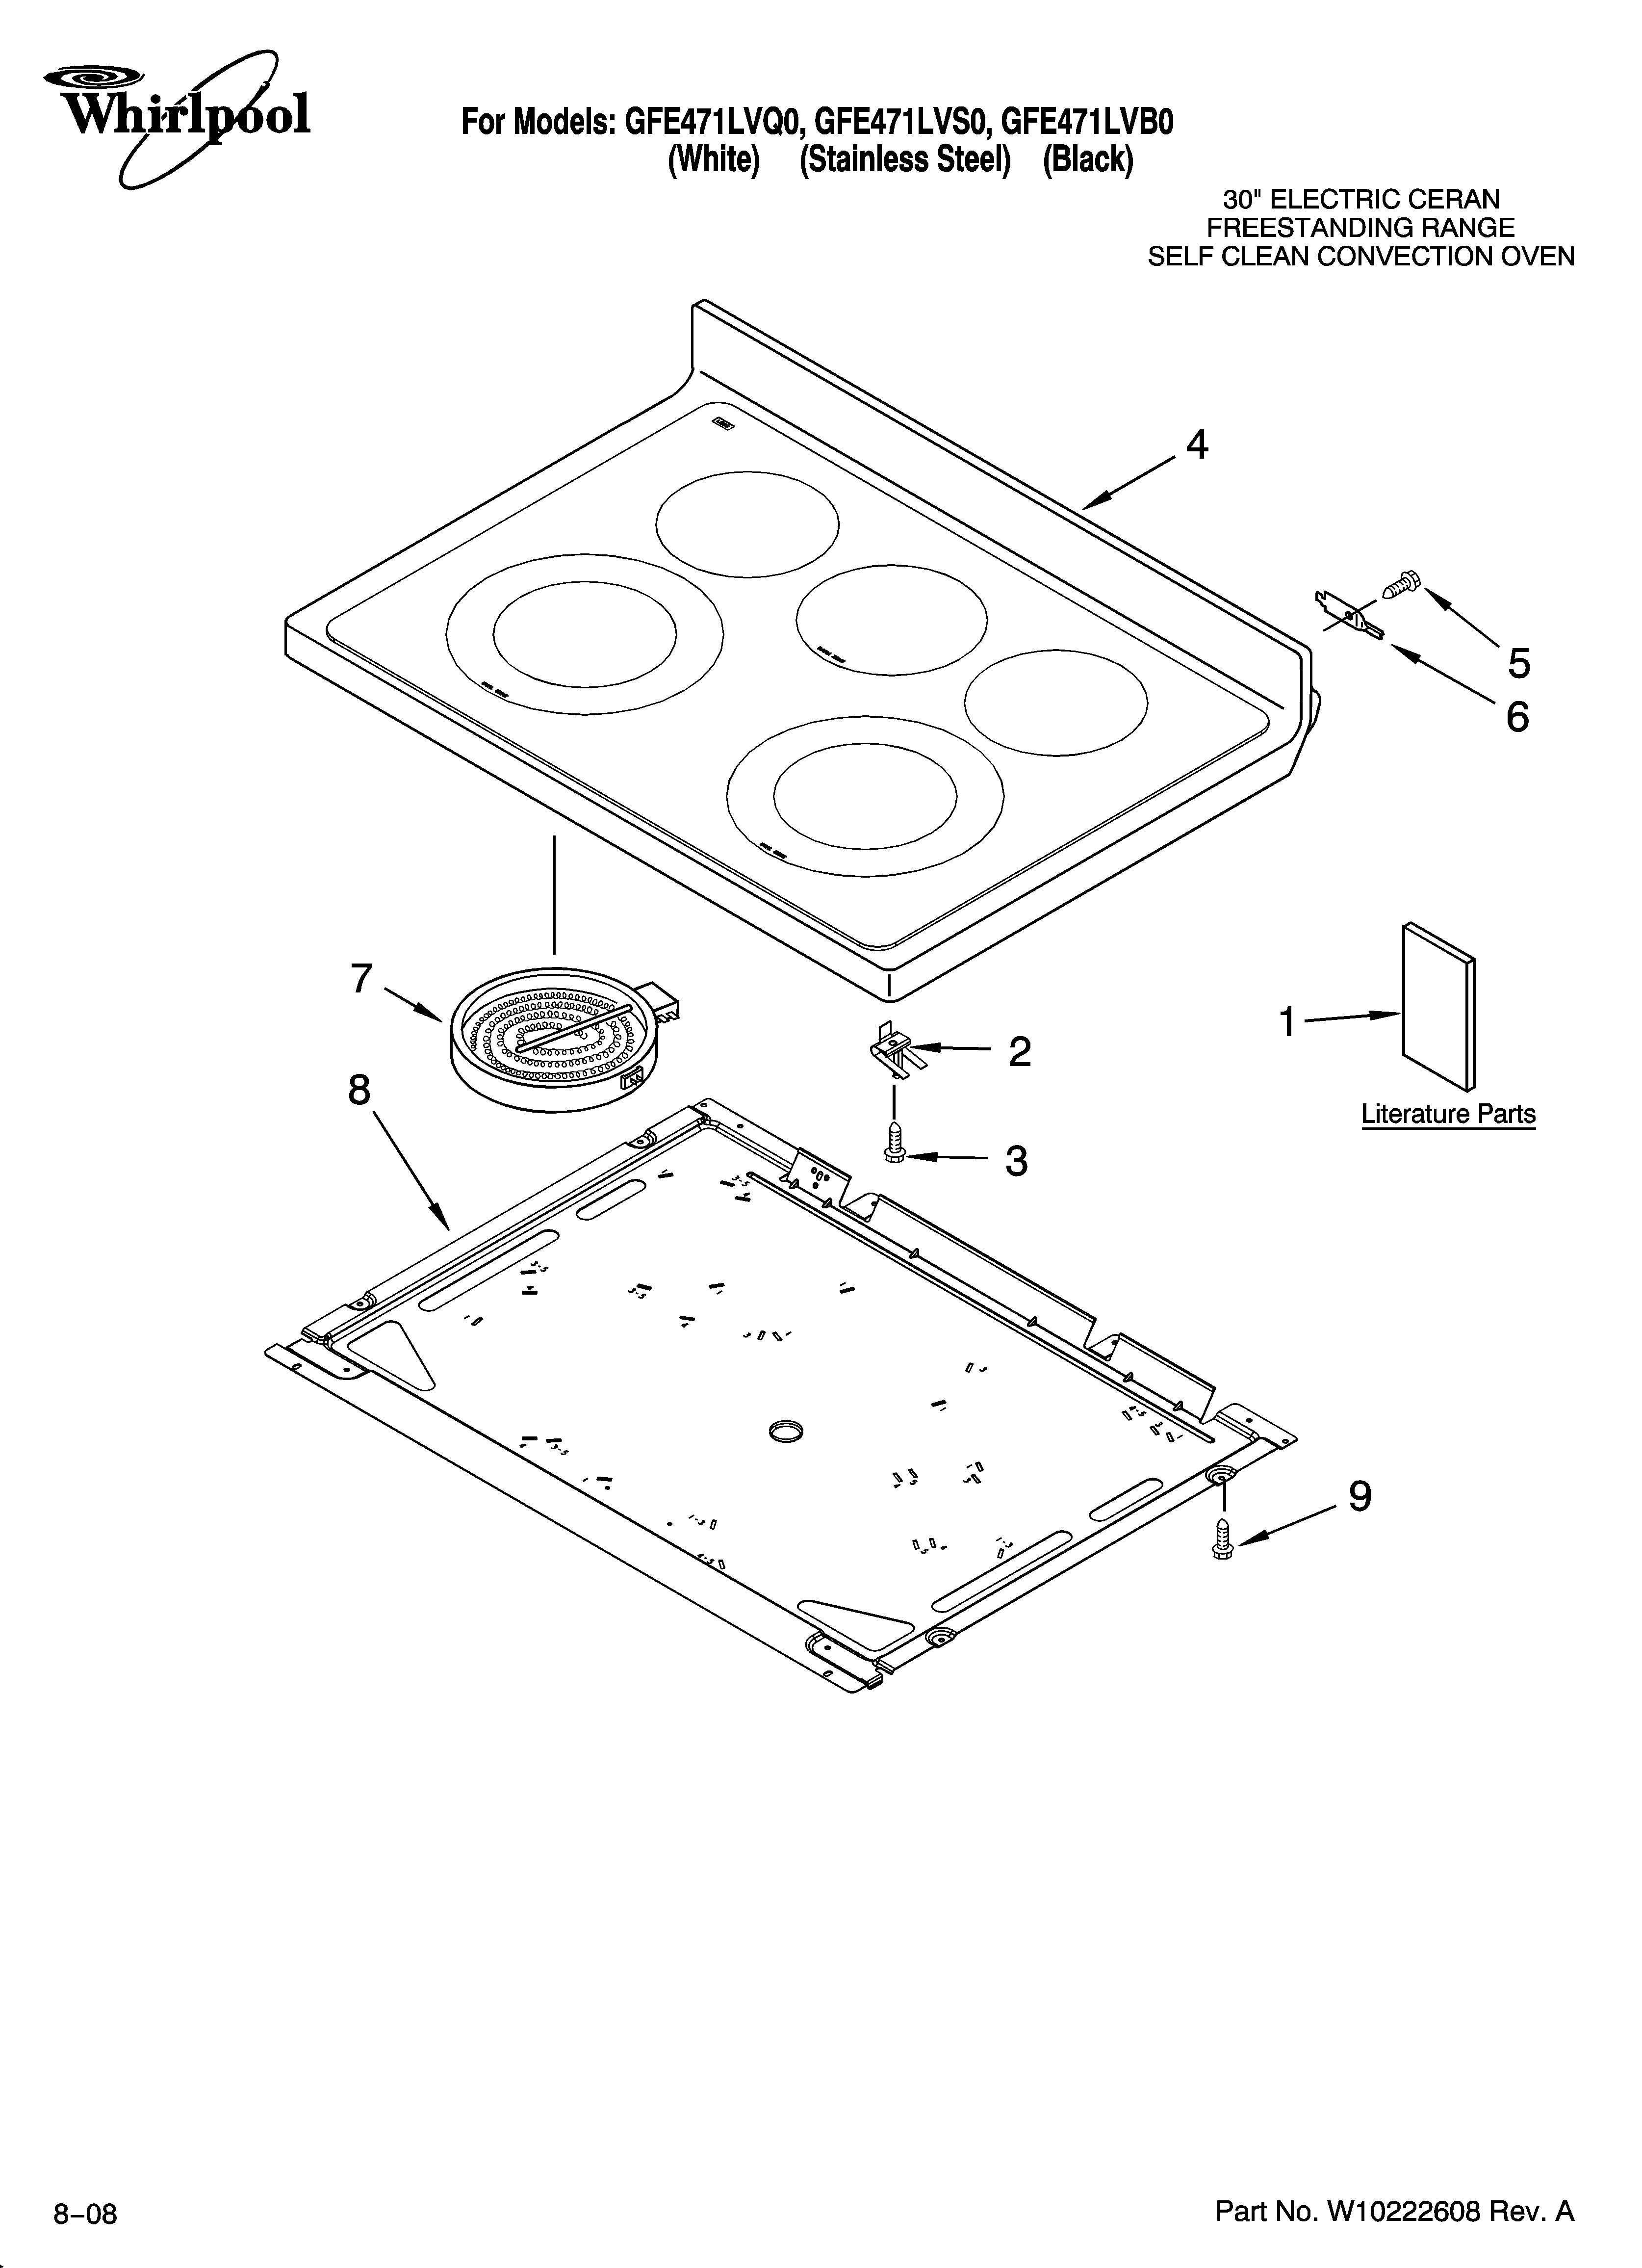 Whirlpool GFE471LVB0 cooktop parts diagram